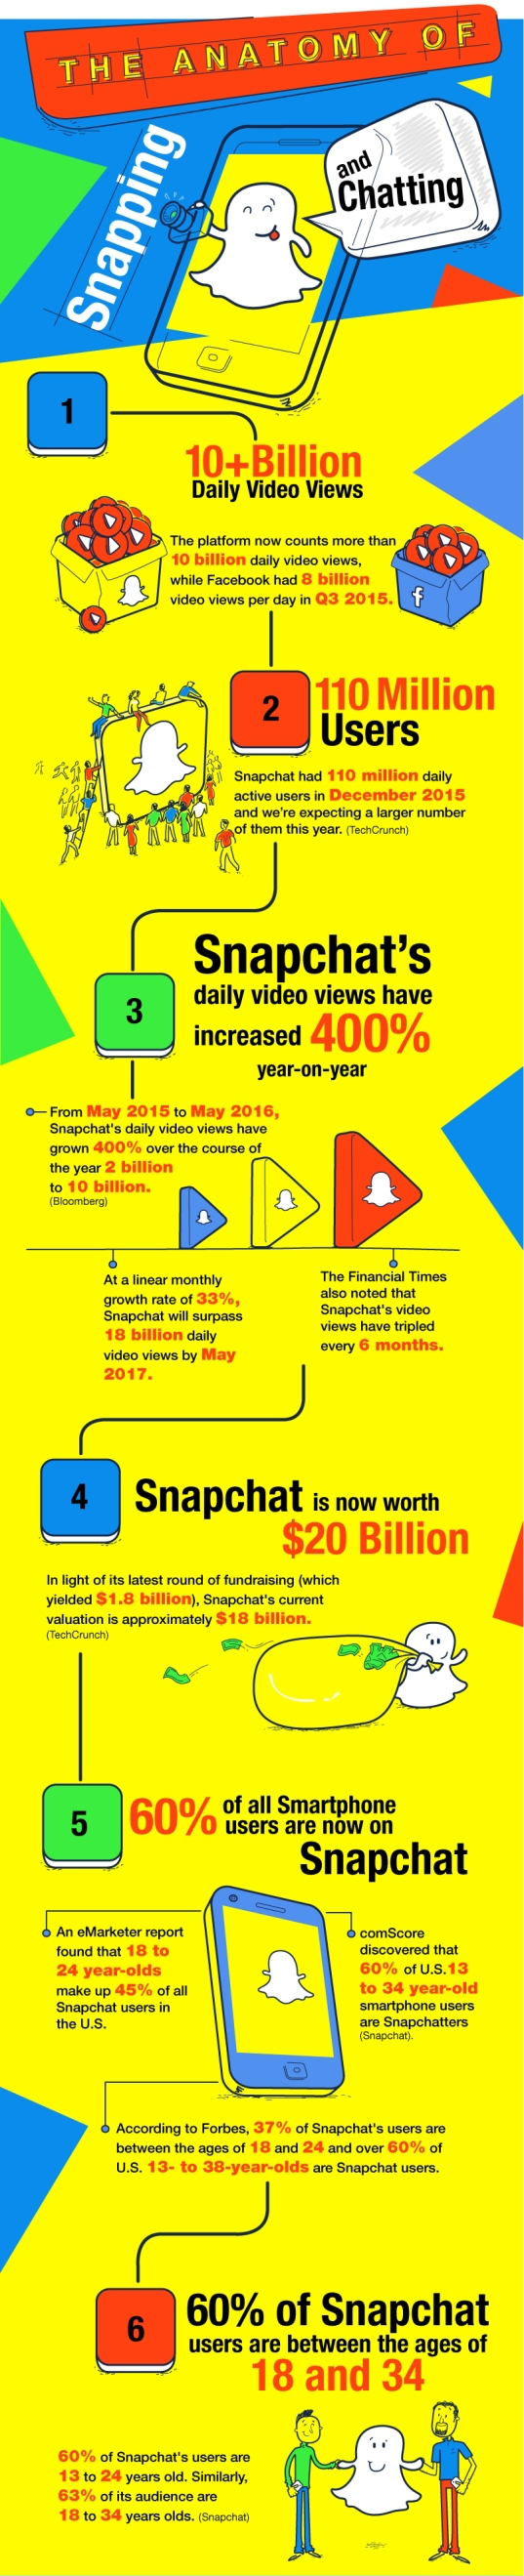 the-anatomy-of-snapping-and-chatting-1